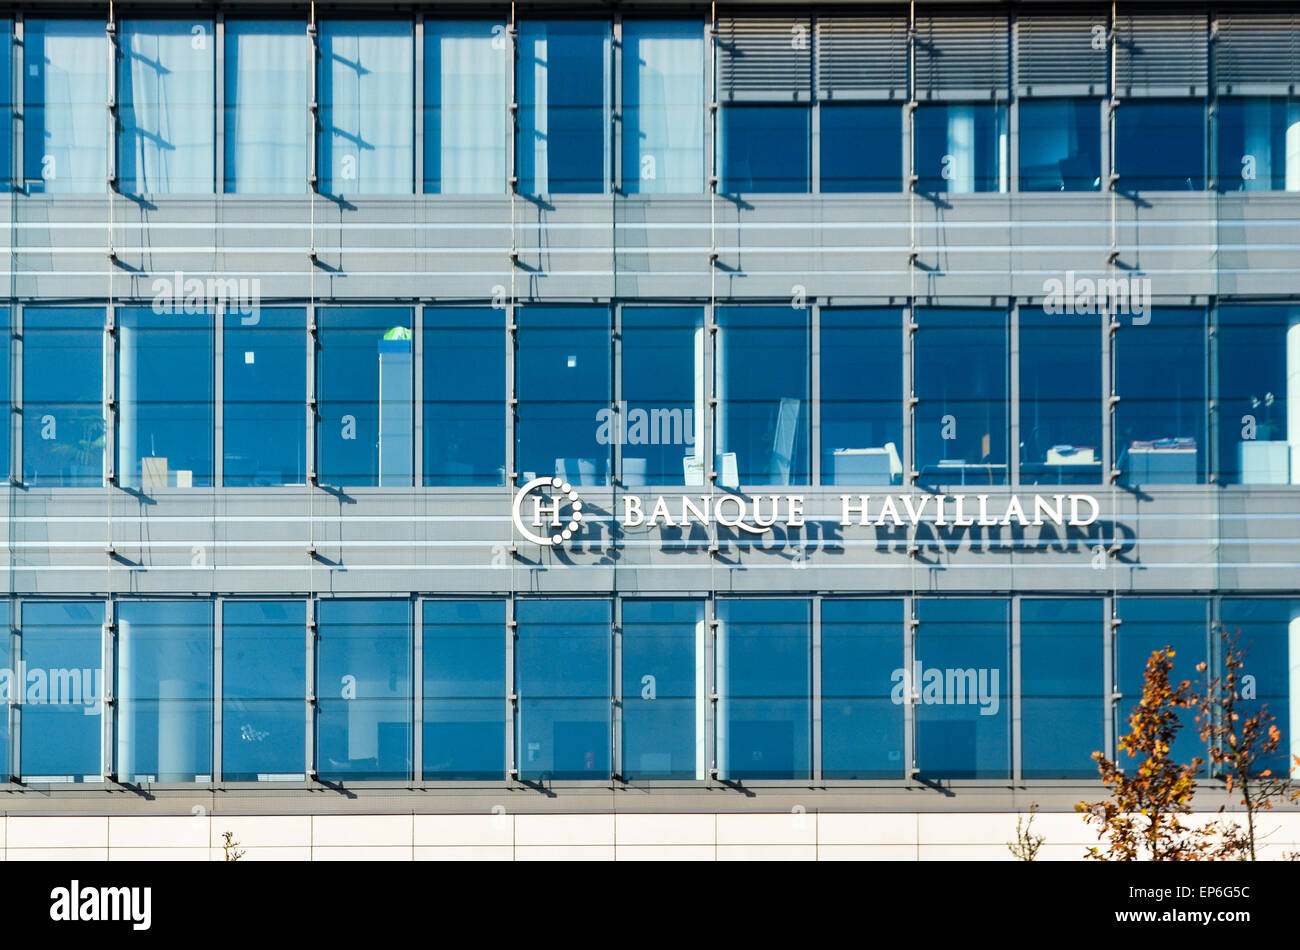 Headquarters of the private bank Havilland, in Kirchberg, the financial district of Luxembourg - Stock Image